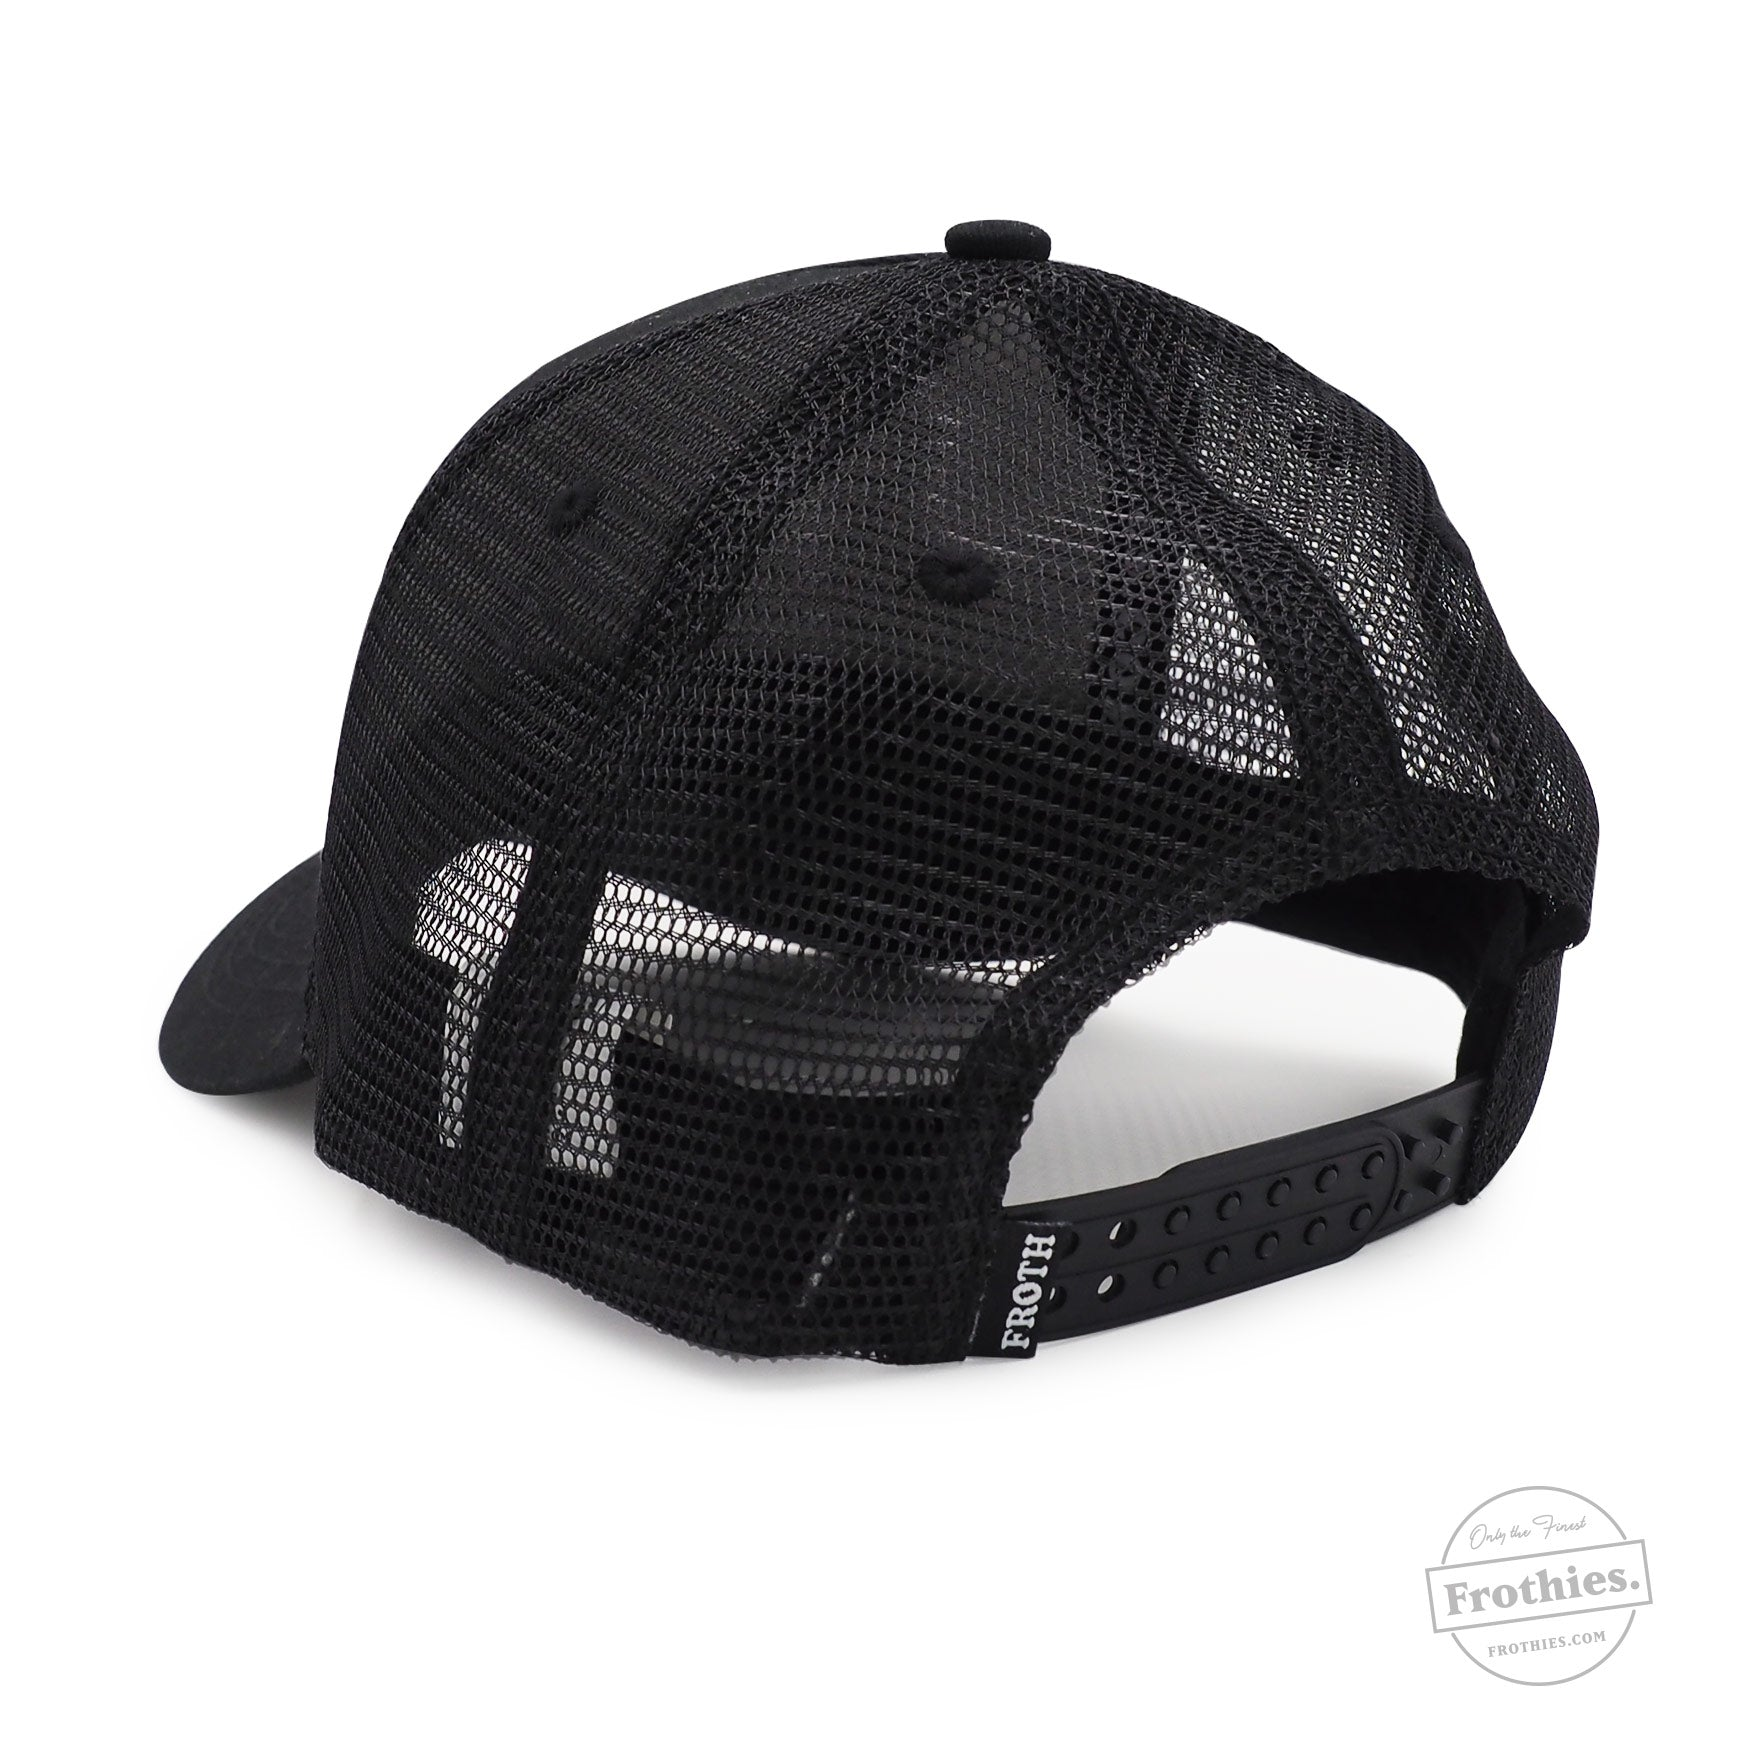 Blackrat Trucker - Black